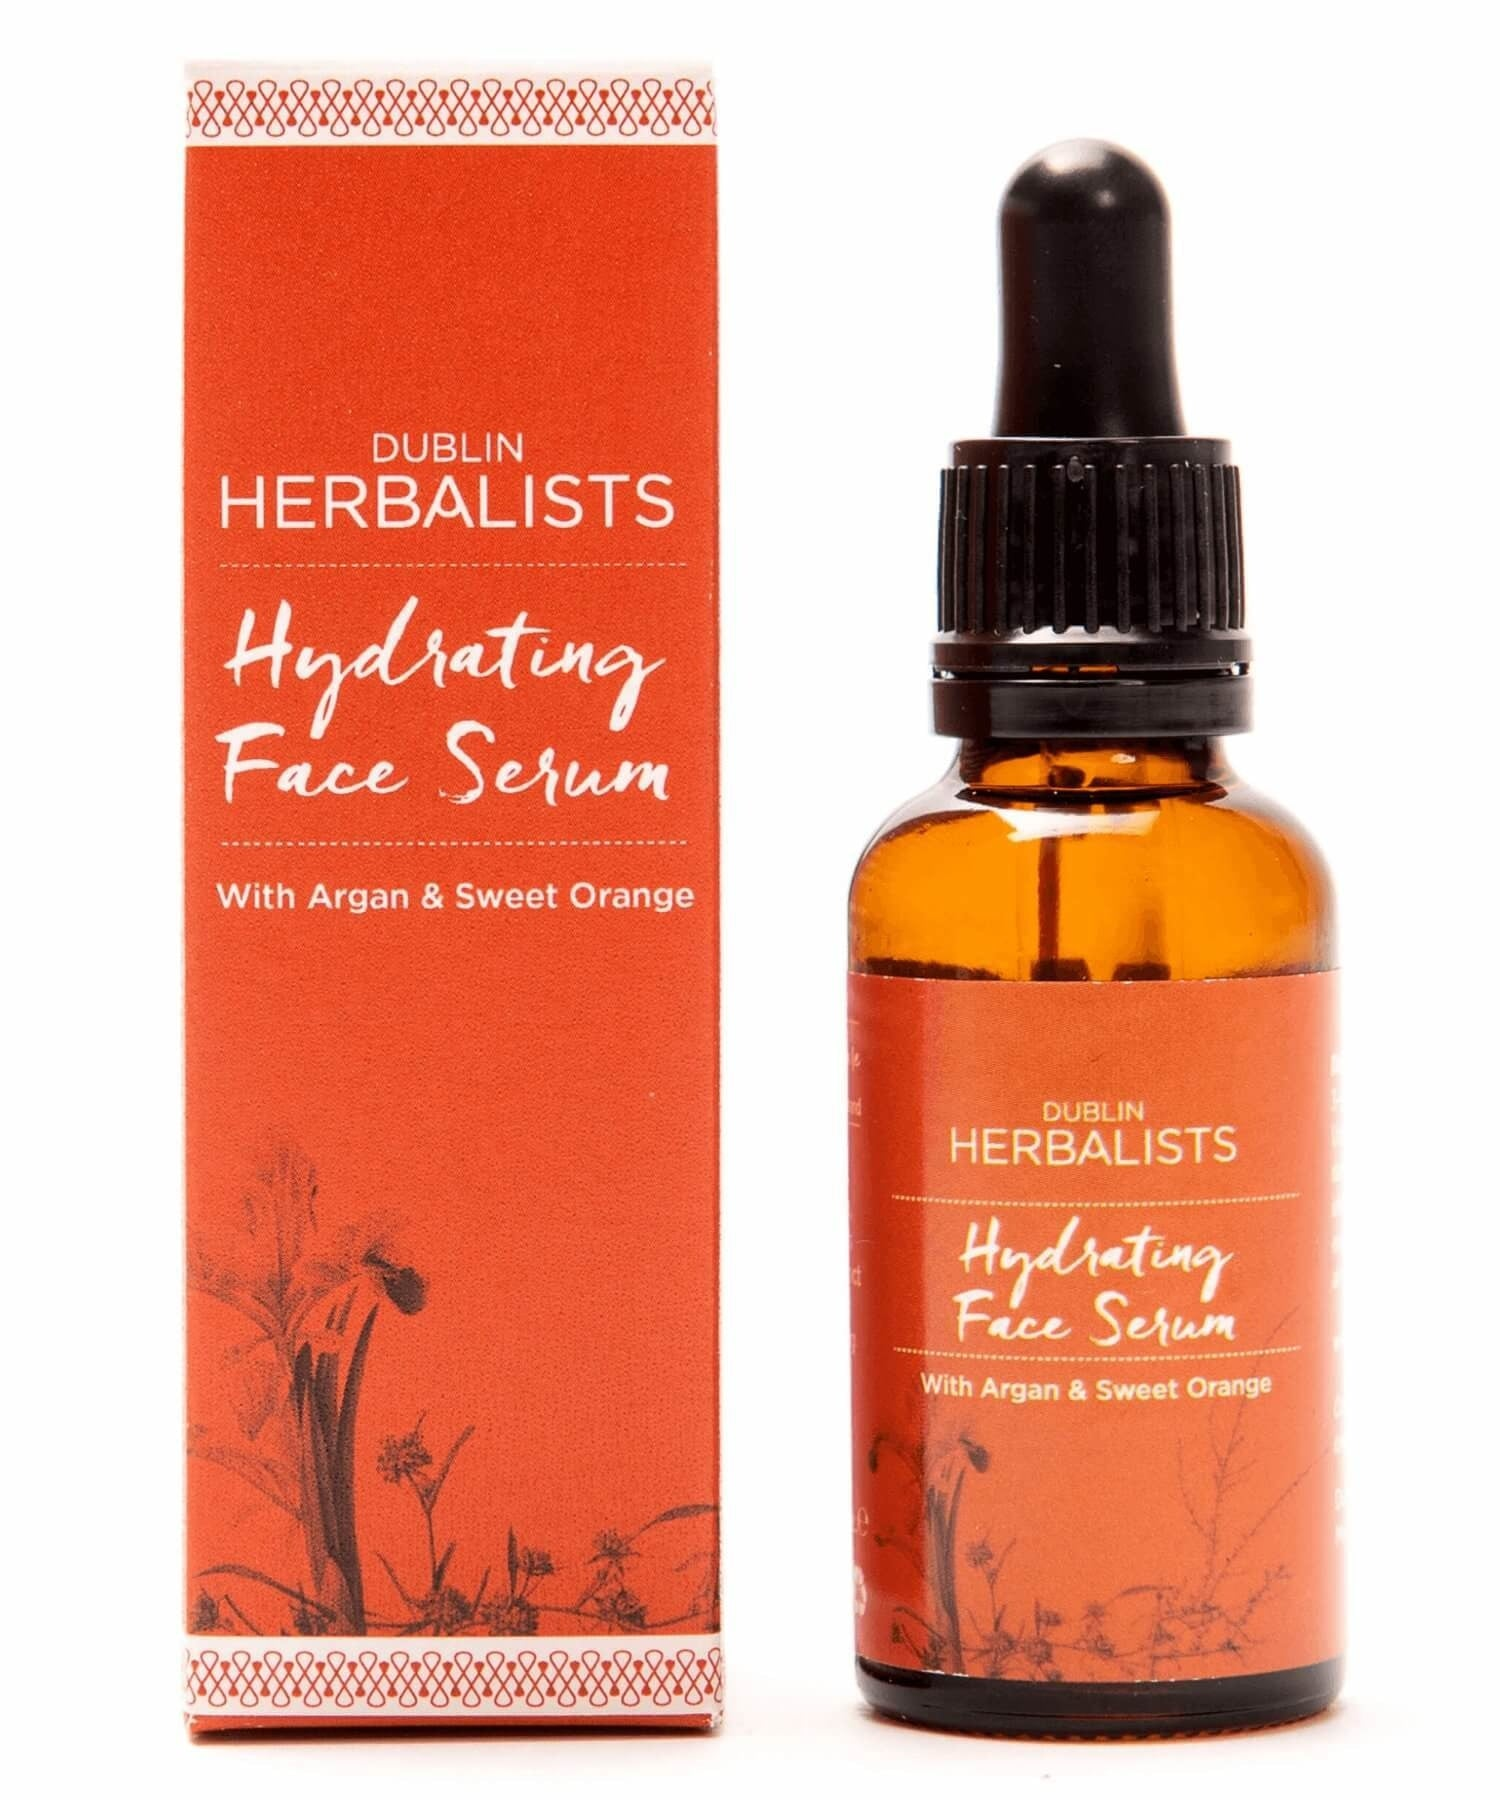 Hydrating Face Serum - [Dublin Herbalists] - Skincare & Beauty - Irish Gifts